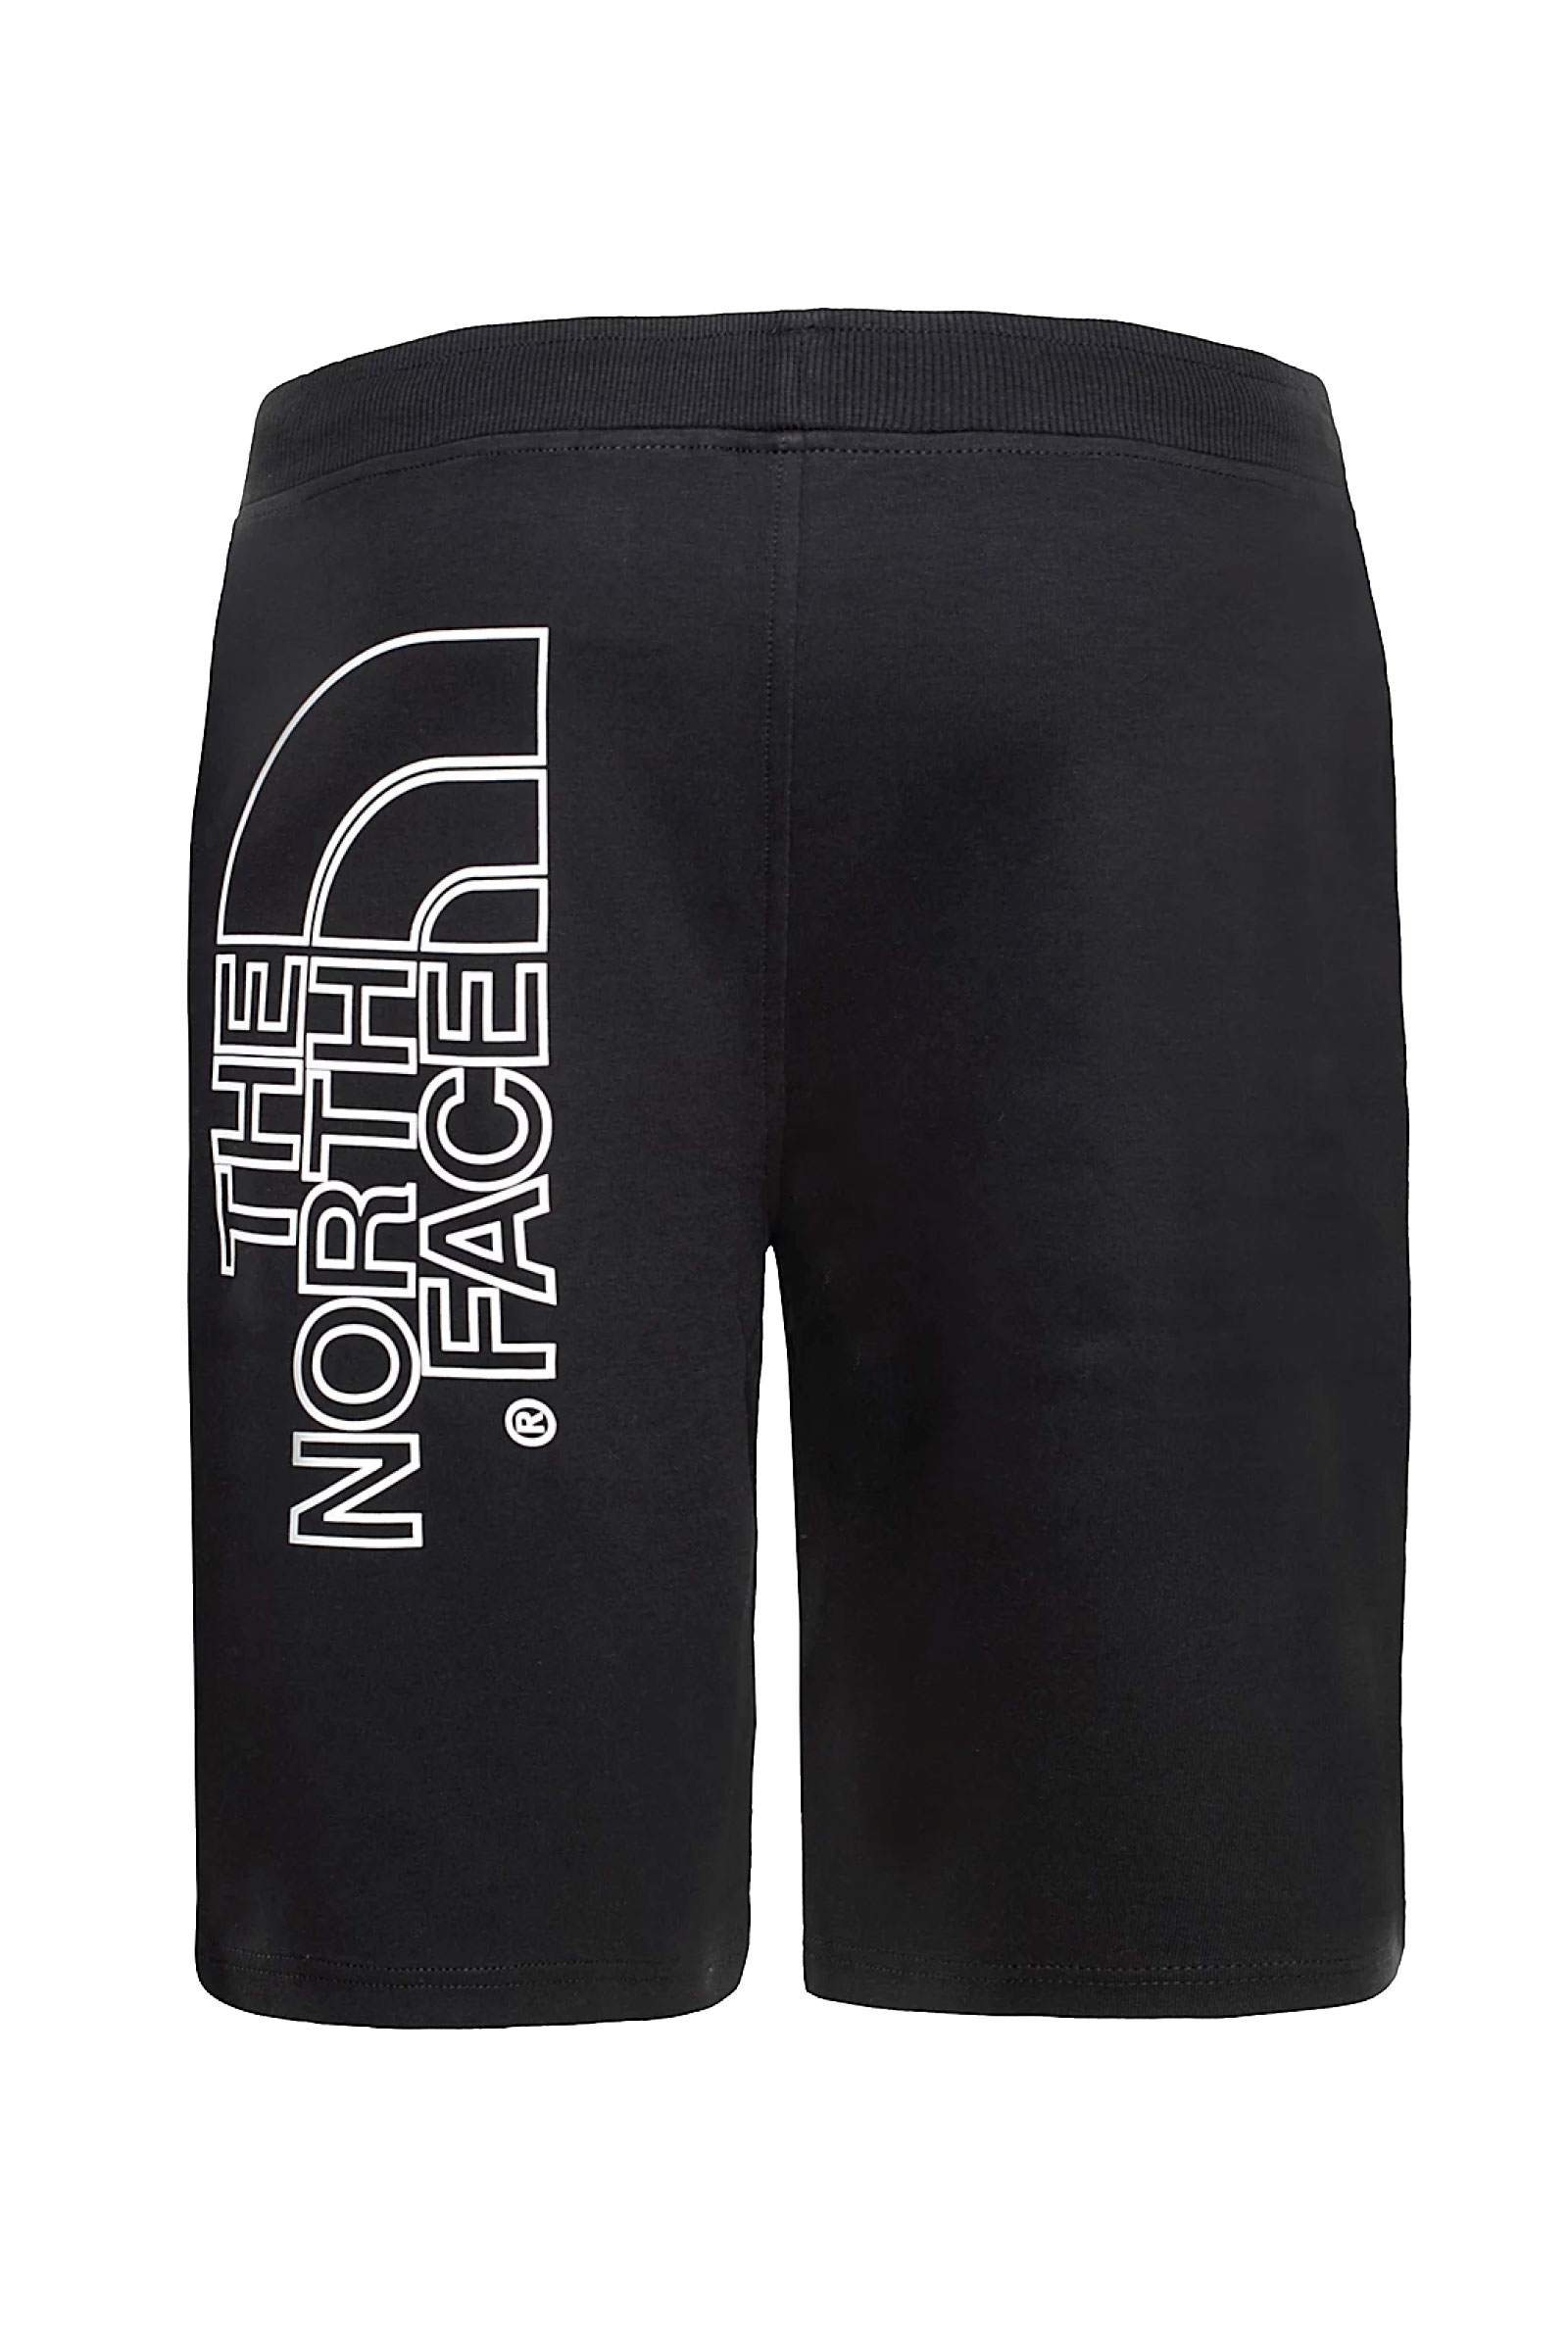 THE NORTH FACE Shorts Uomo THE NORTH FACE | Shorts | NF0A3S4FJK31